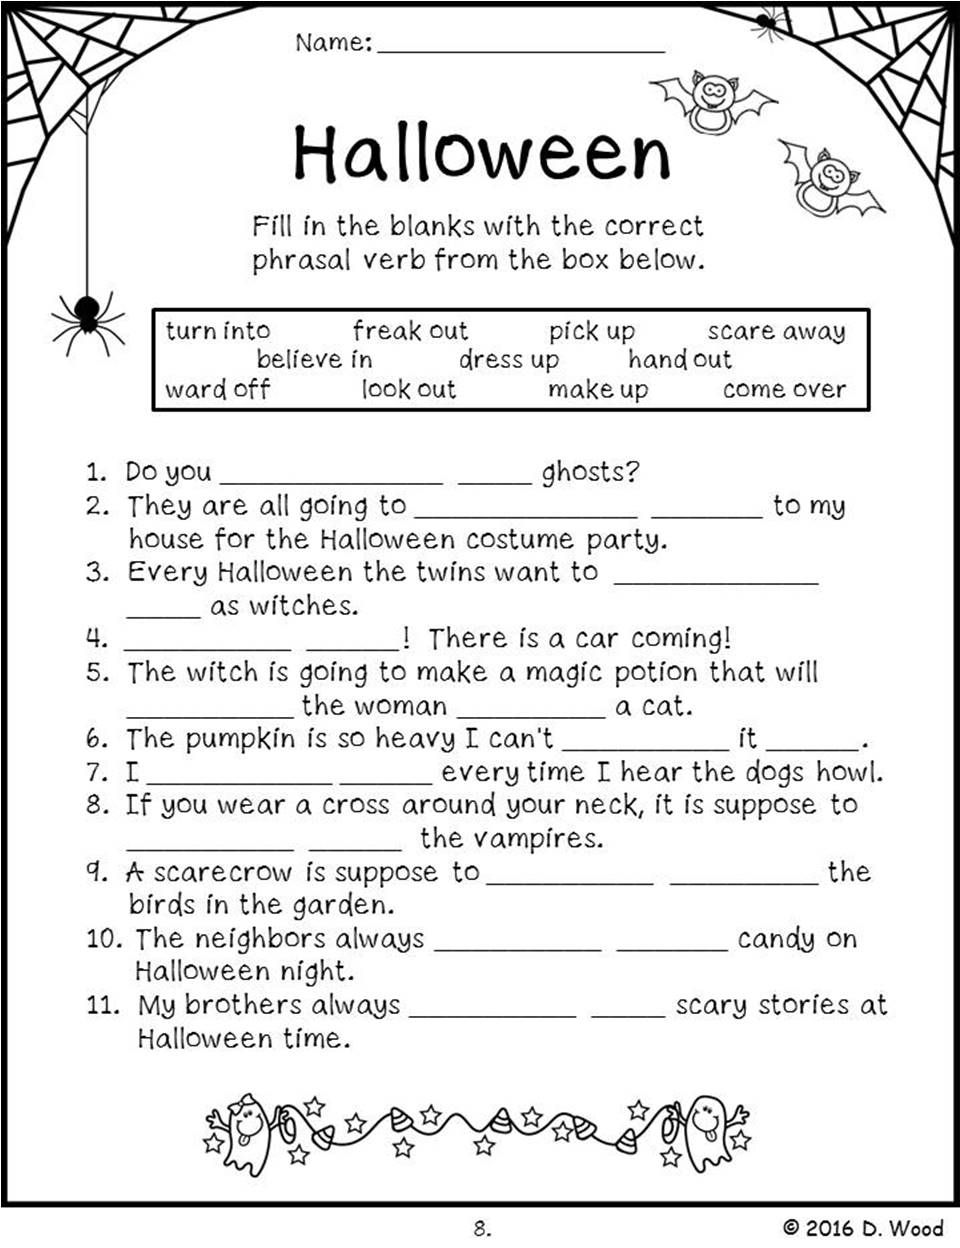 small resolution of Pin on Fall Fun Resources